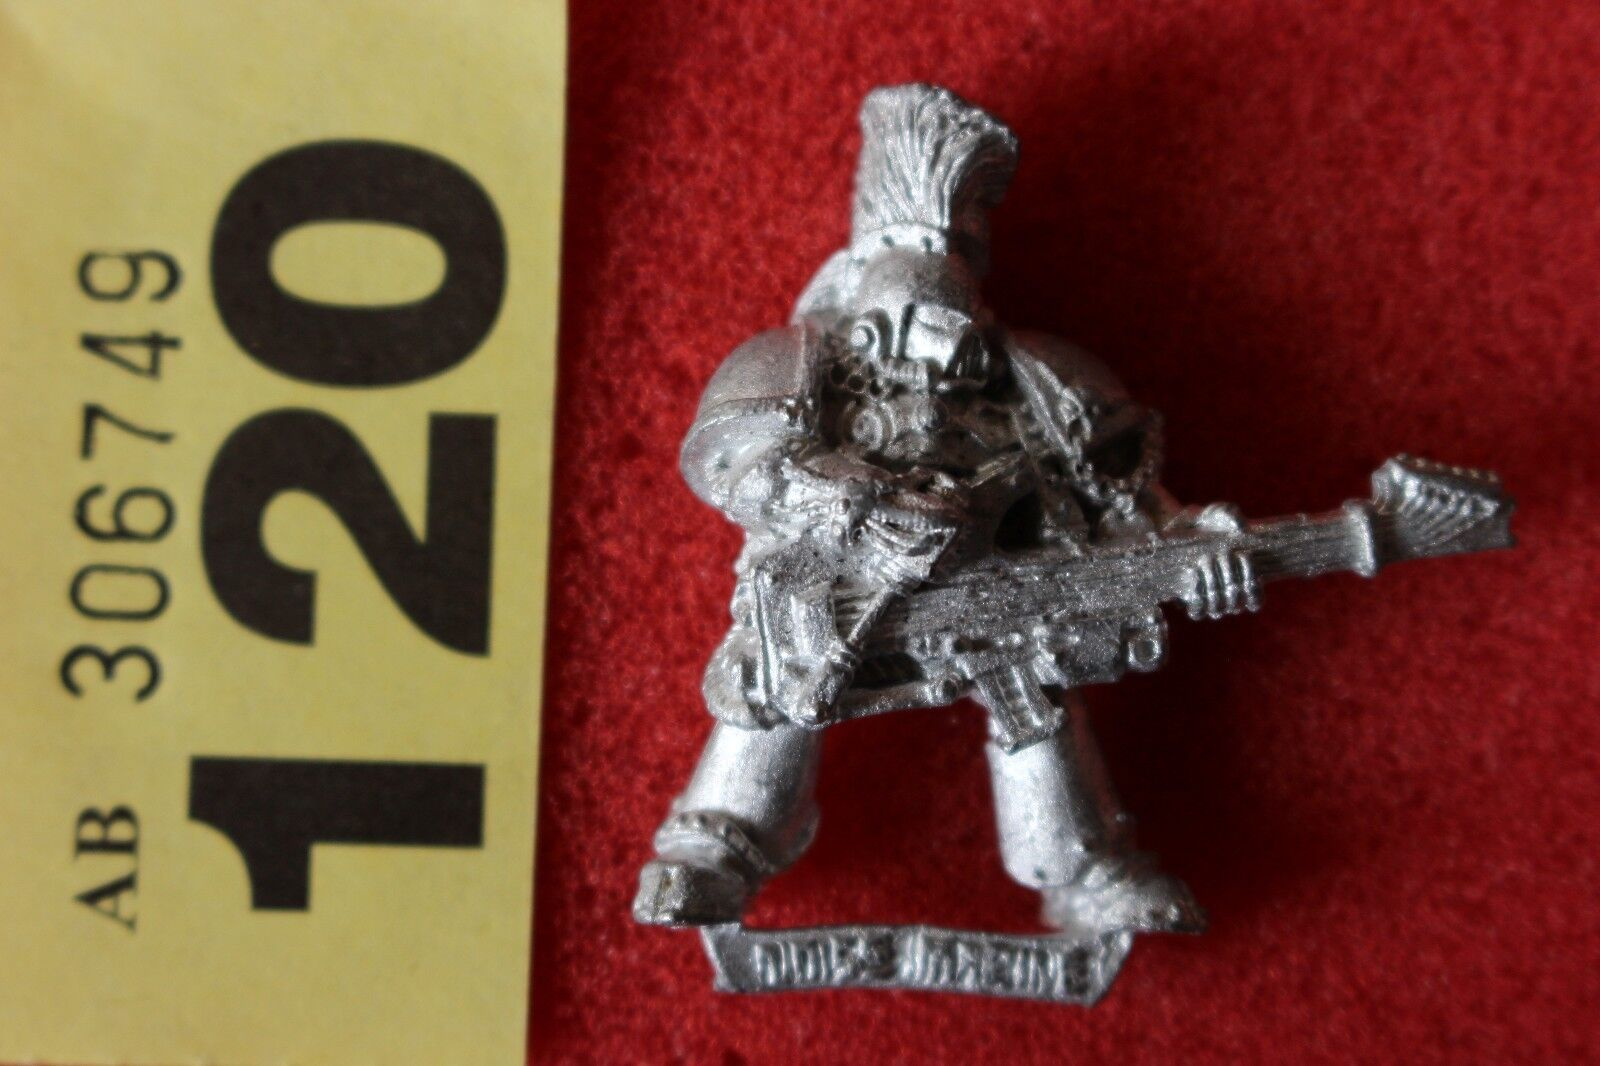 Spel arbetarhop Warhammer 40K Chaos Space Marines Noise Marine Rogue Trader Ny